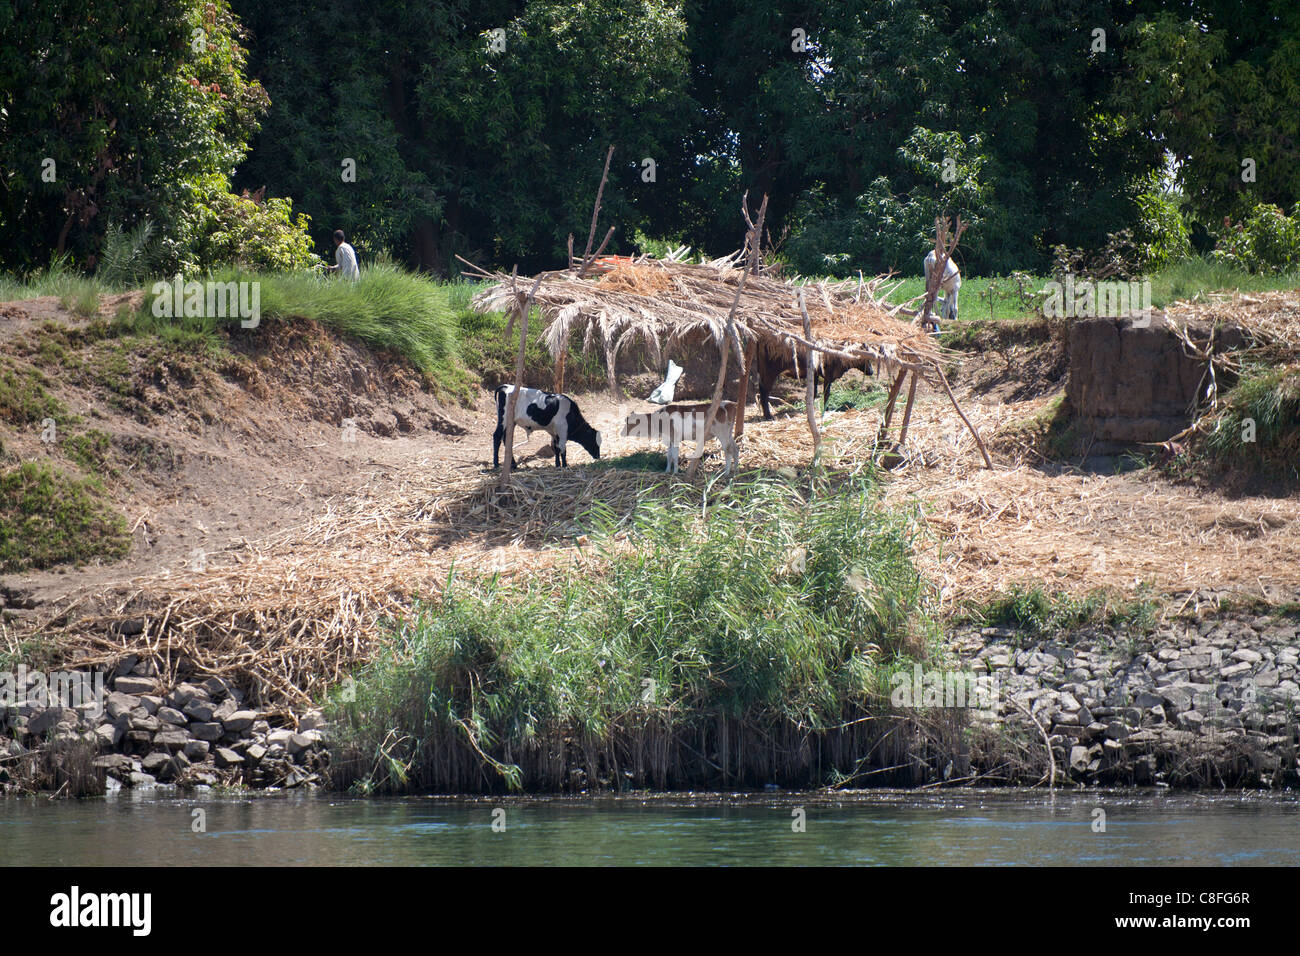 A section of Nile riverbank showing waters edge, grazing cattle under a reed shelter with trees in the background - Stock Image